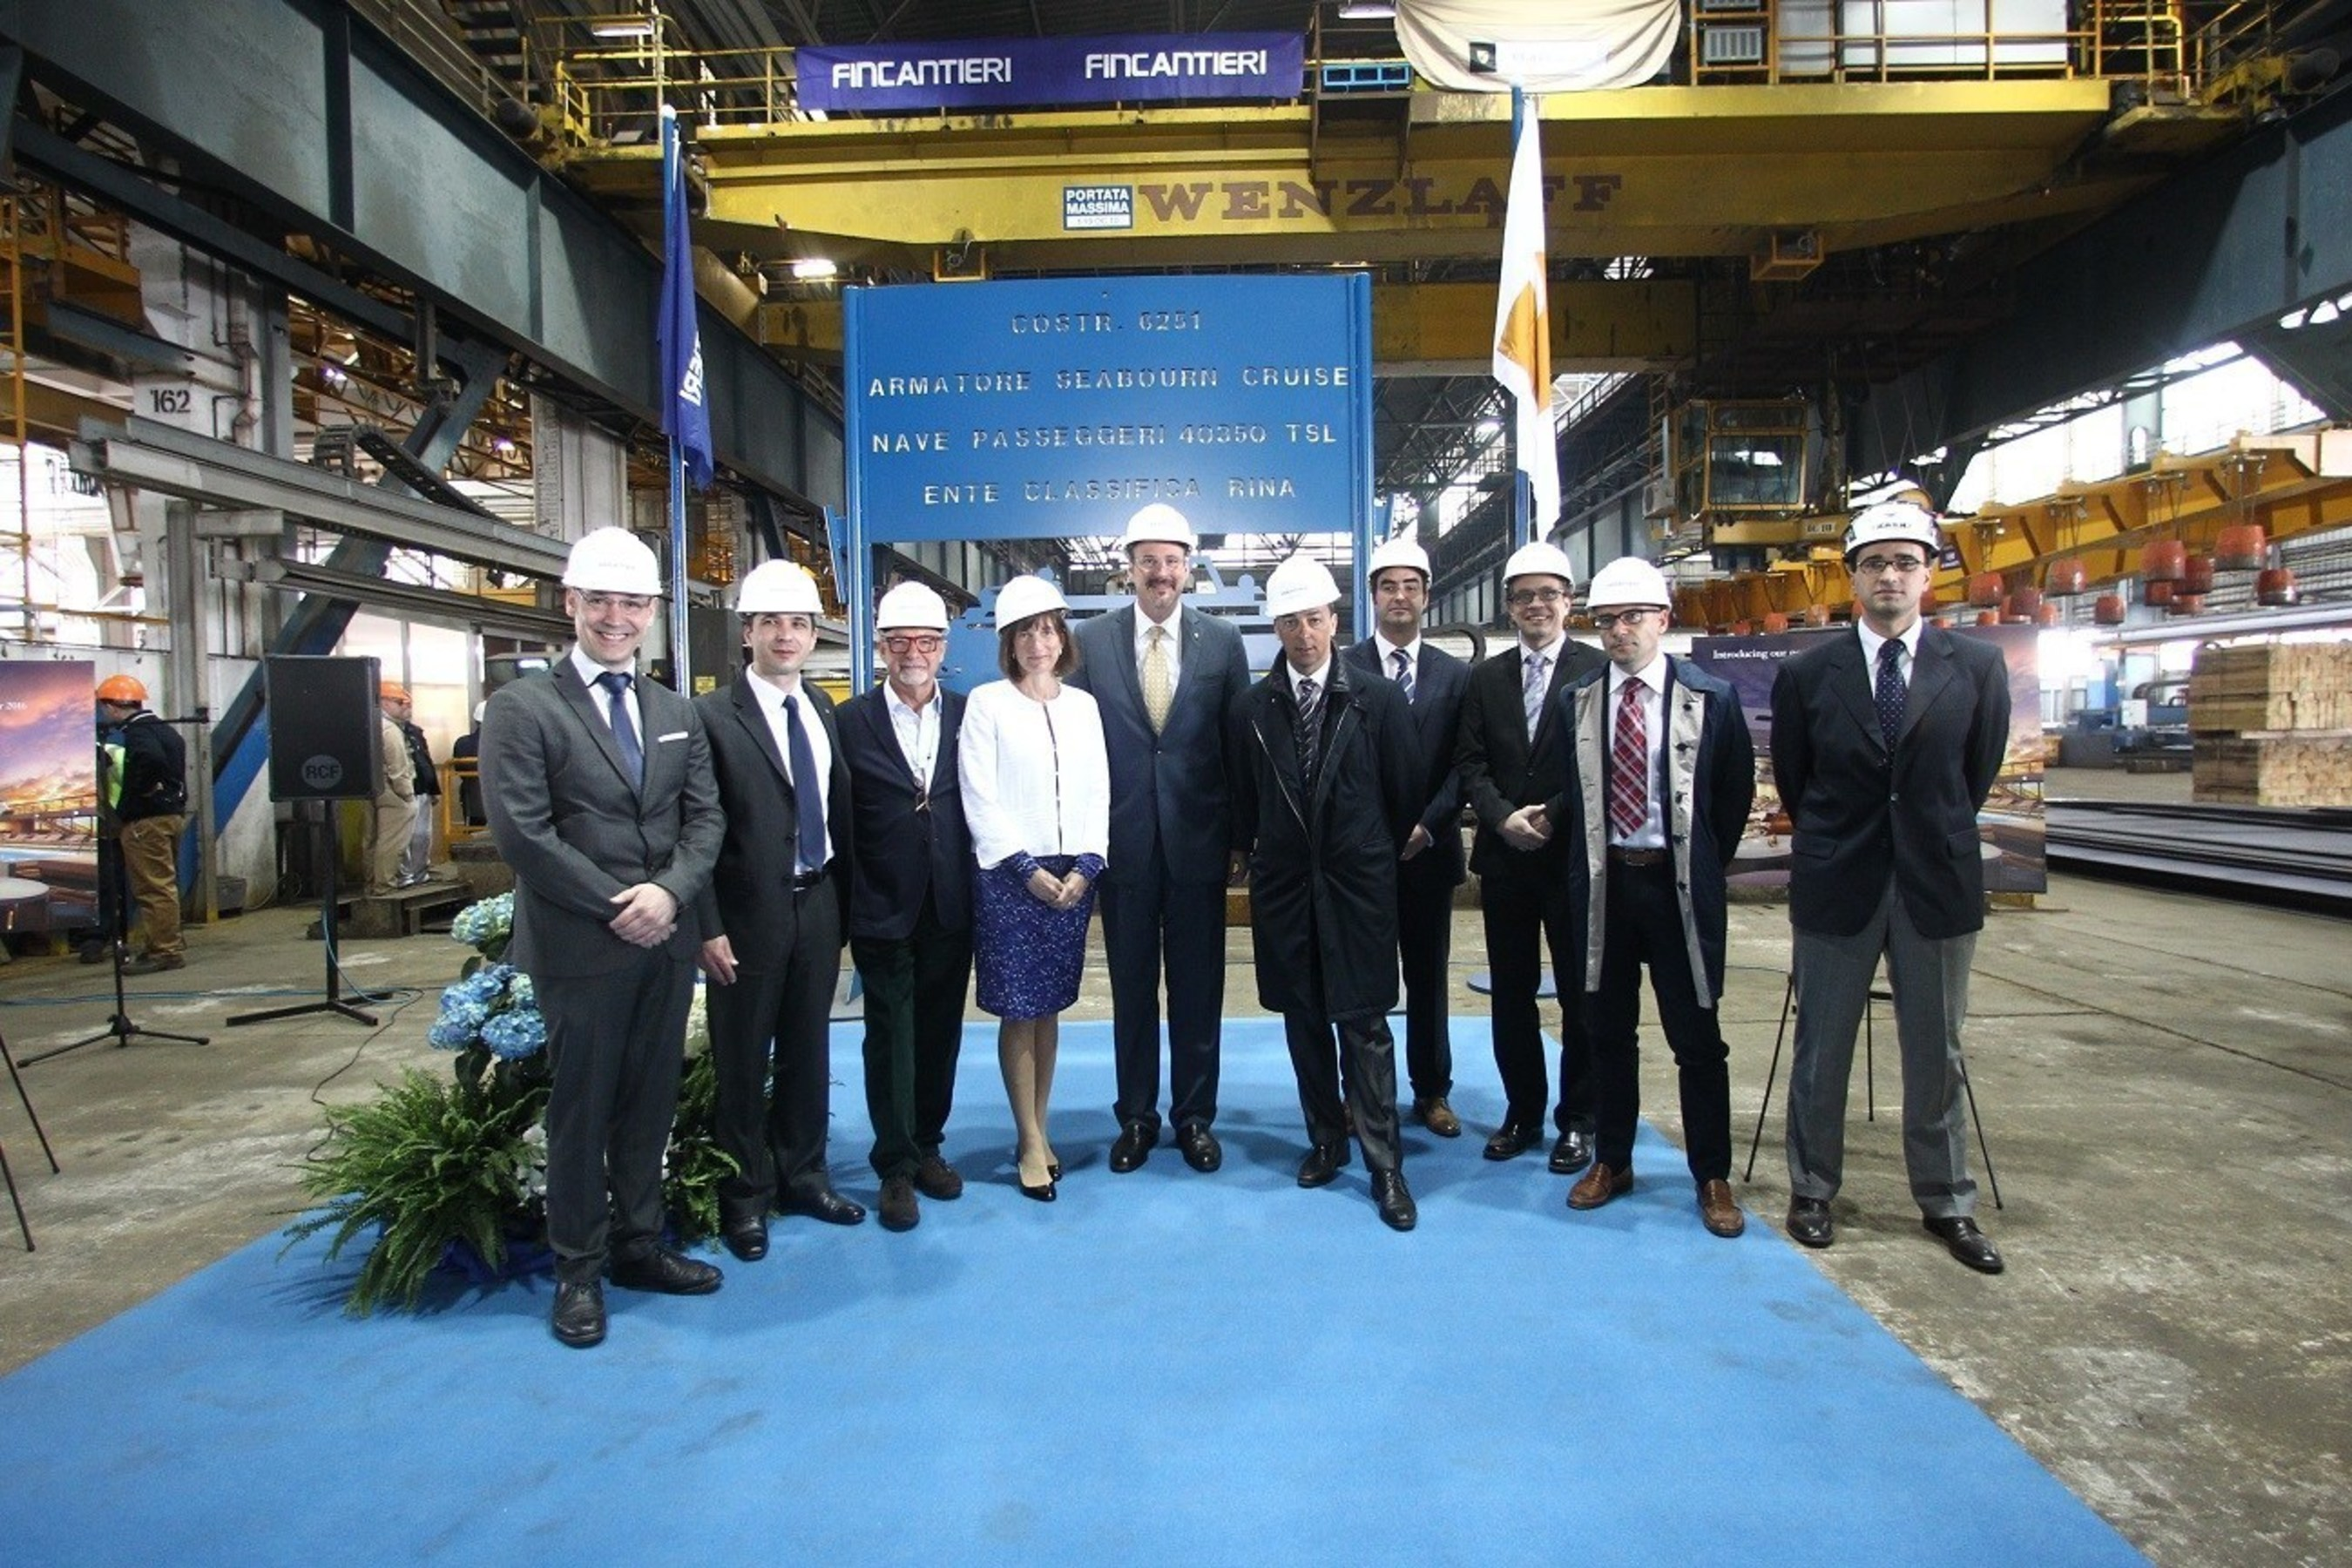 Seabourn celebrated an important milestone today with the cutting of the first steel for Seabourn Encore. Pictured here (left to right):Vitor Alves, Newbuild Project Manager, Seabourn; Cyril Tatar, Vice President of Newbuild and Technical Operations, Seabourn; Adam D. Tihany, Designer for Seabourn Encore, Tihany Design; Marnie Tihany, Director of Business Development, Tihany Design; Richard Meadows, Seabourn President; Antonio Quintano, Director of Fincantieri's Marghera shipyard; James Moore, Corporate...